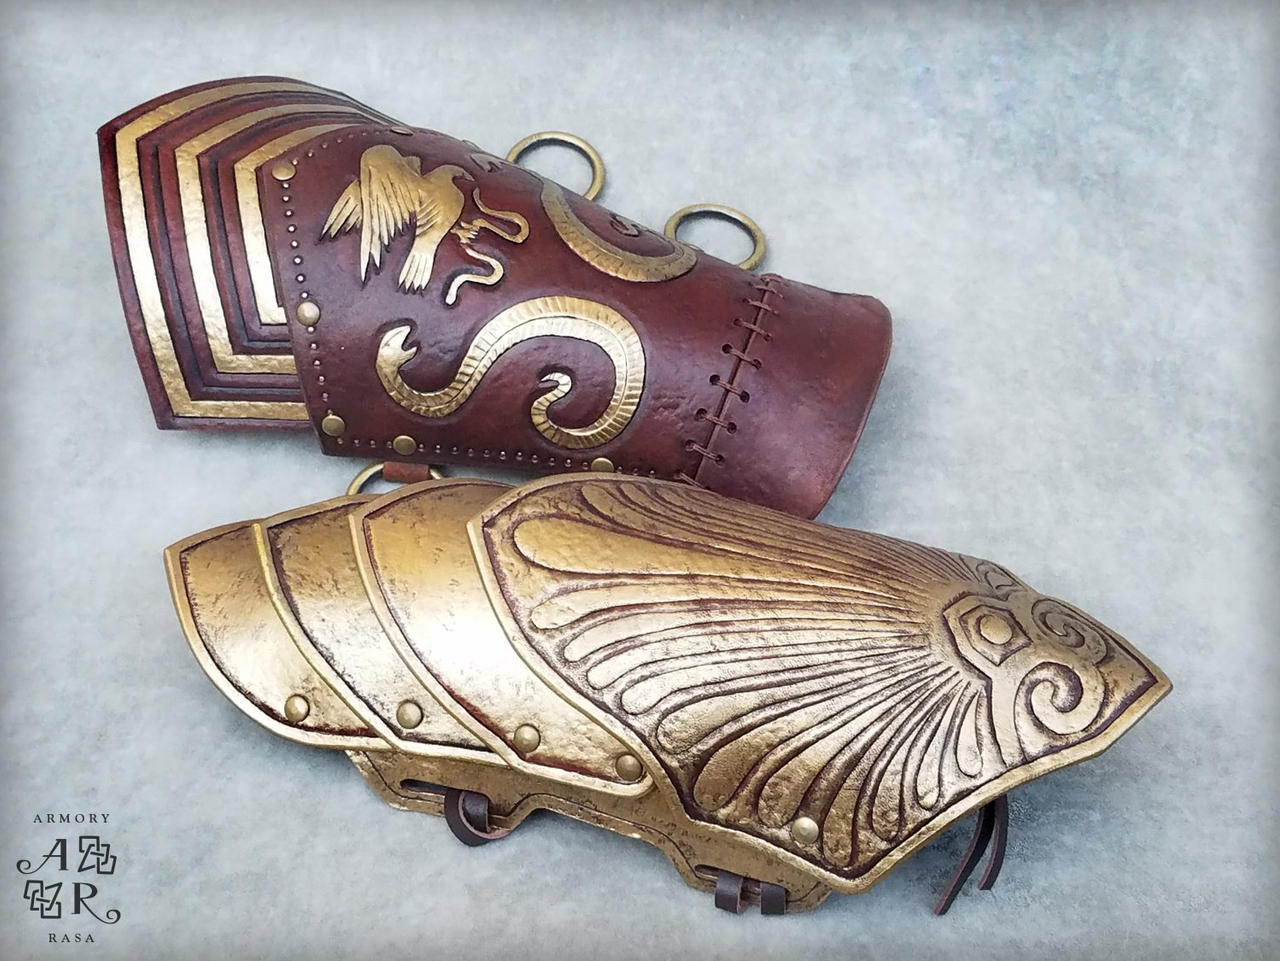 Assassin S Creed Odyssey Bracers By Armory Rasa On Deviantart